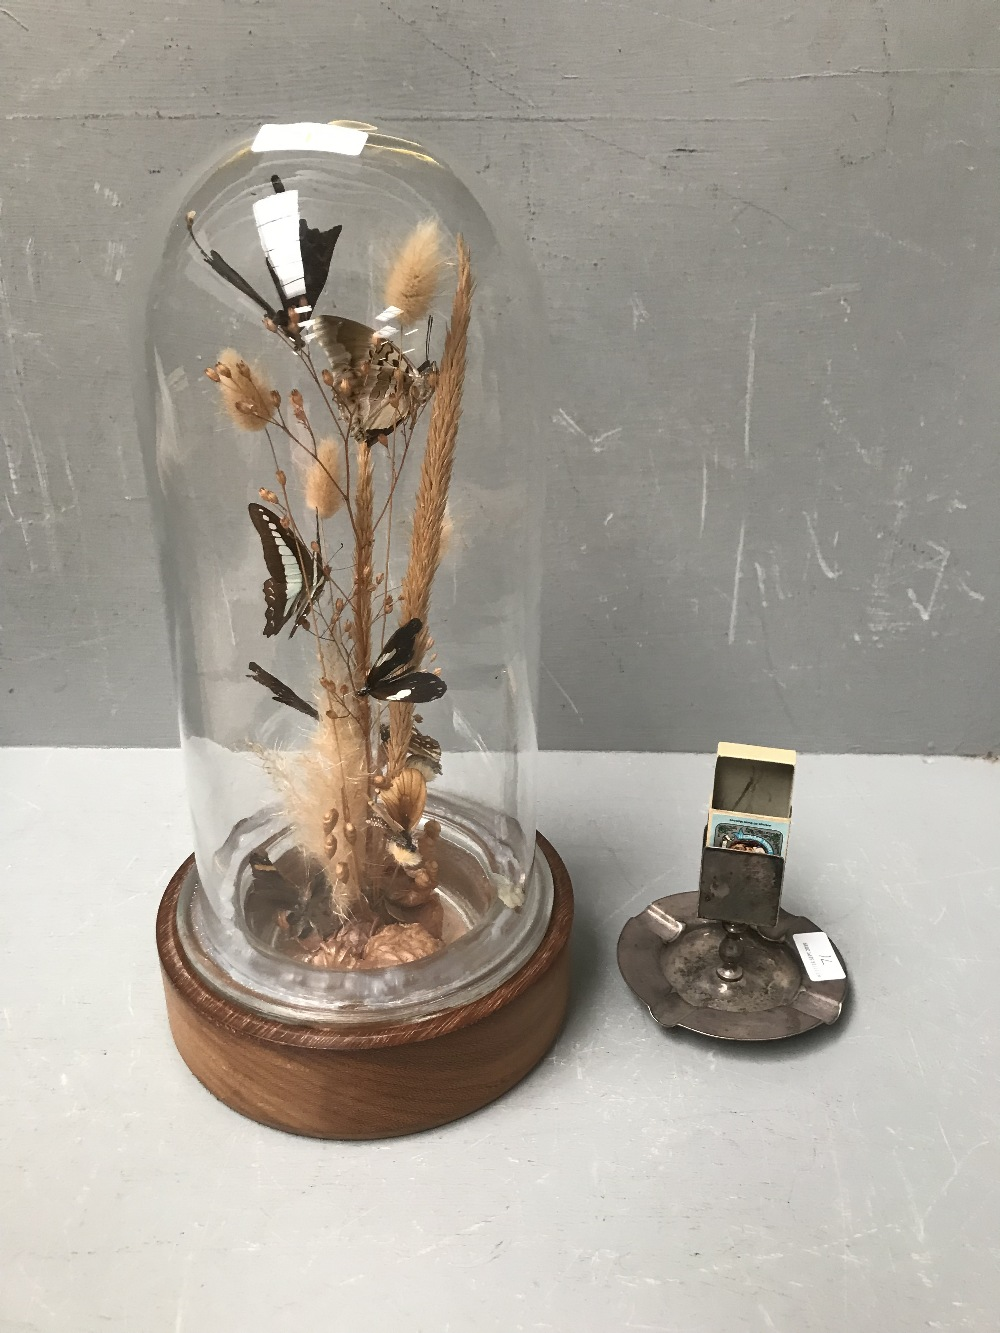 Lot 71 - Cylindrical glass case on a wooden stand 40 cm containing butterflies on grasses & white metal